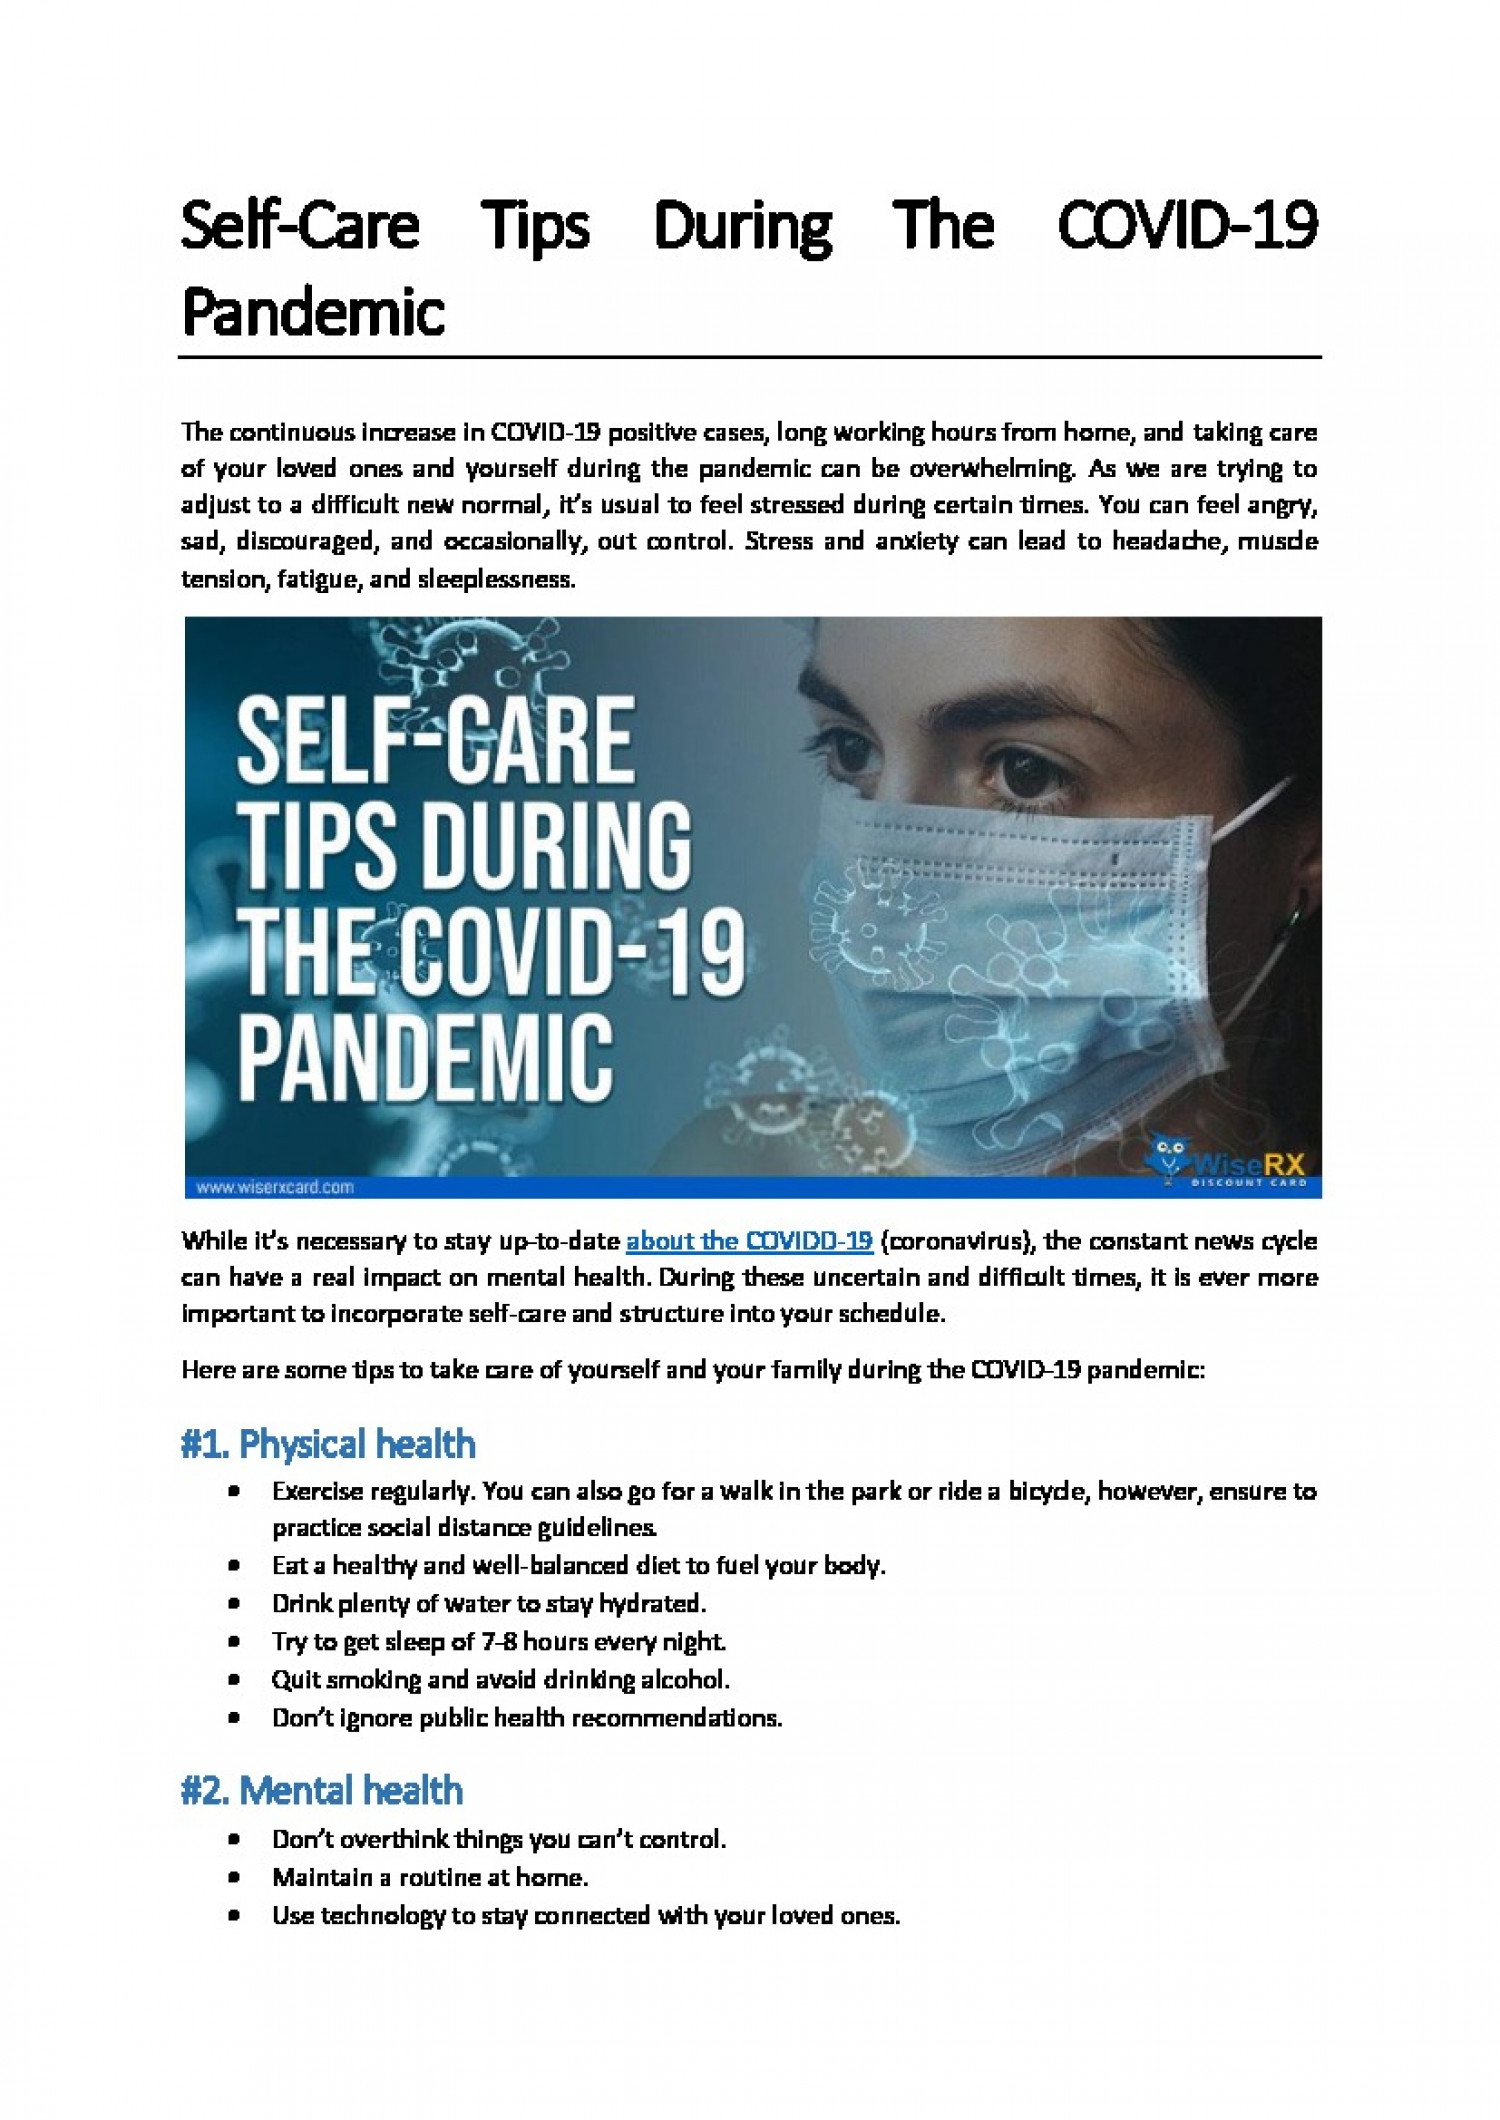 Self-Care Tips During The Covid-19 Pandemic Infographic